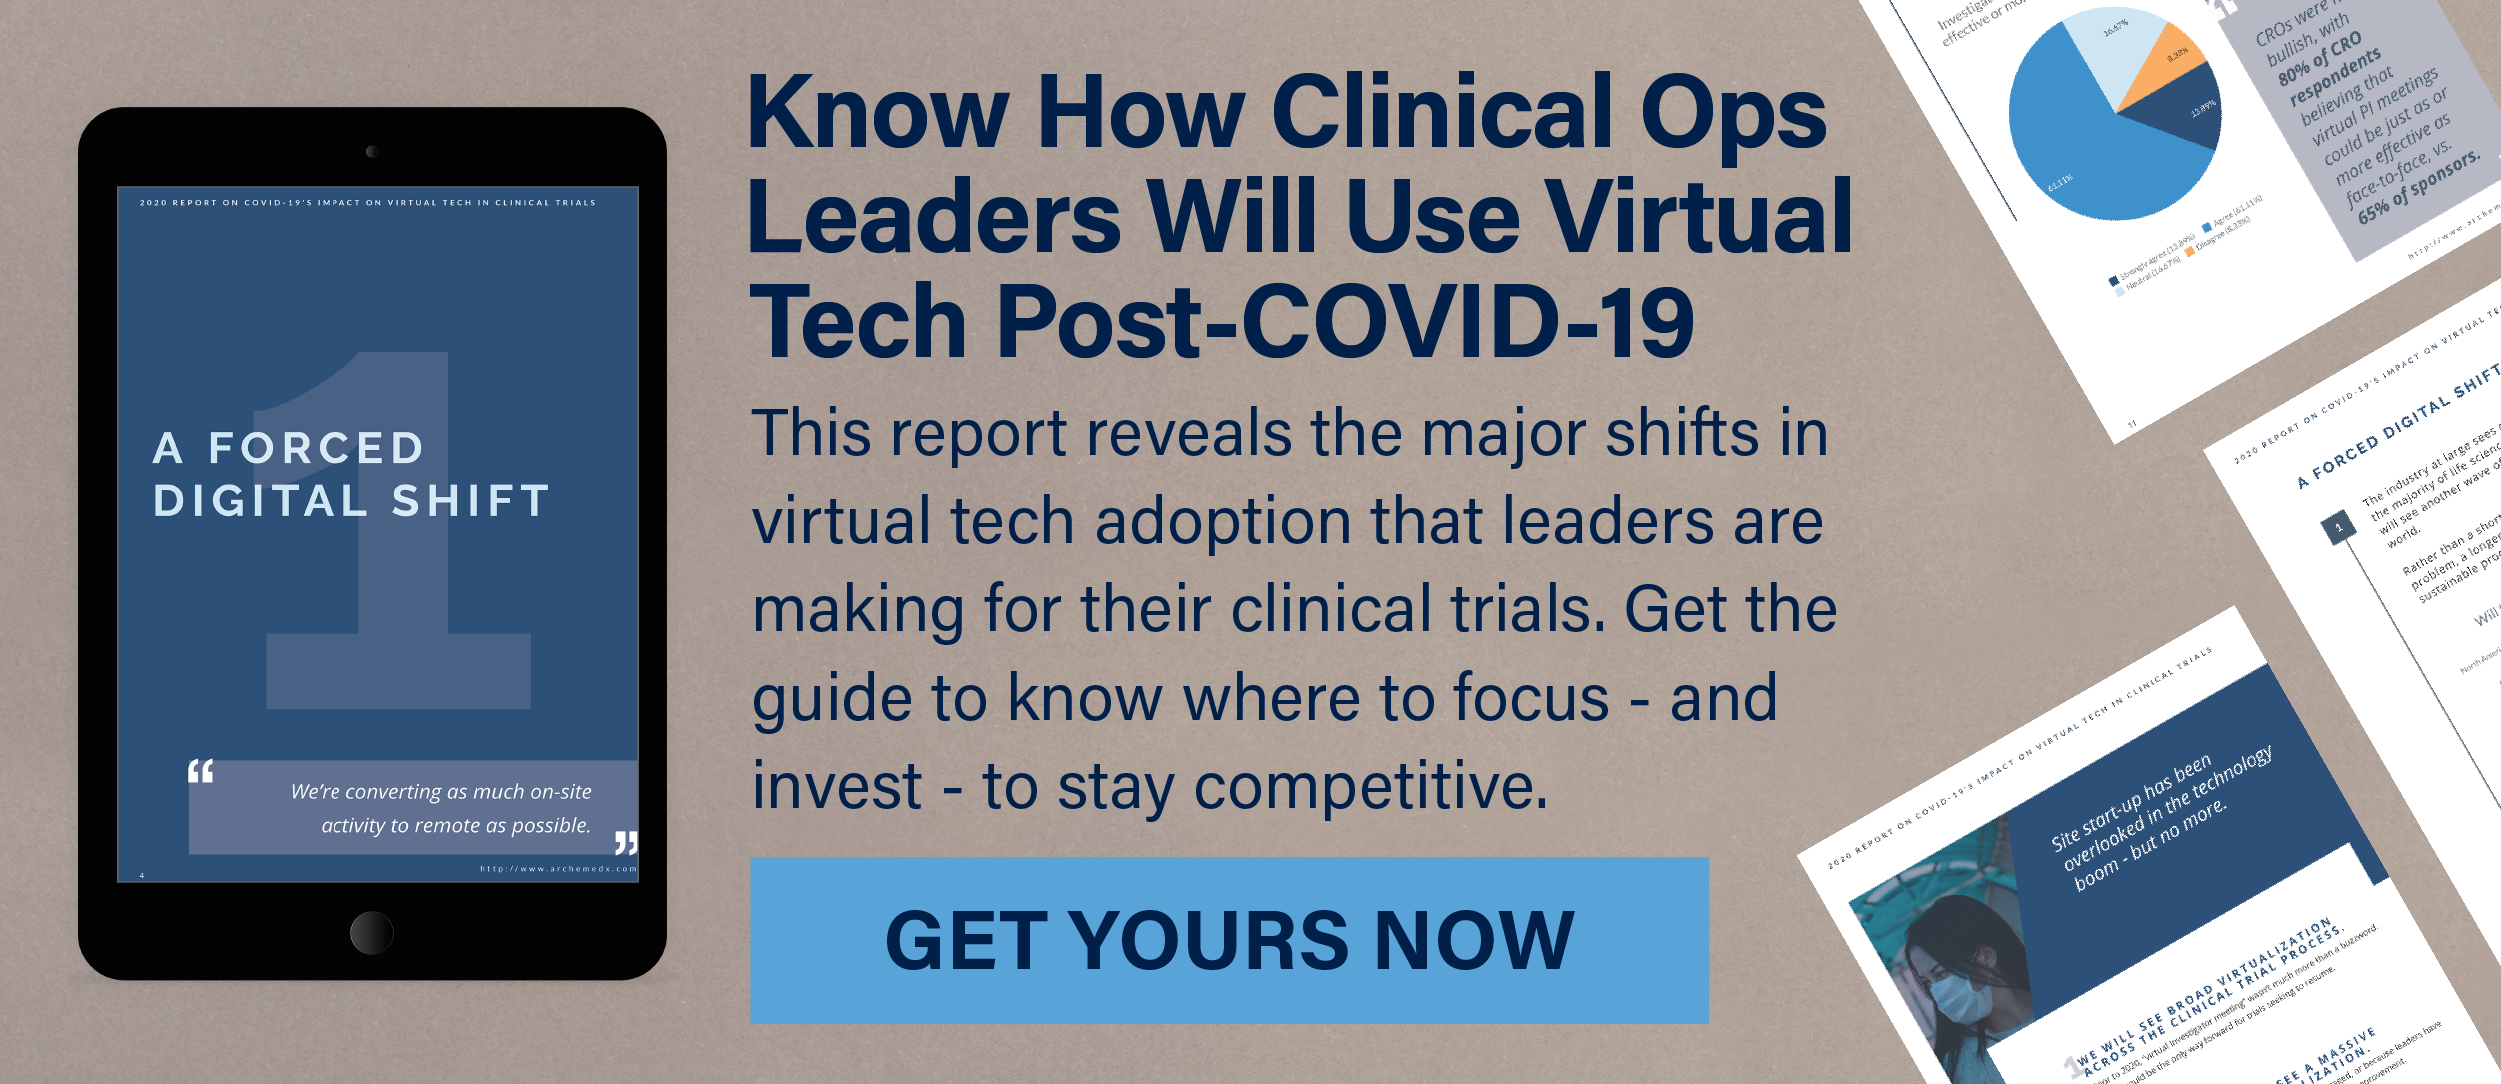 Virtual Tech Use in Clinical Operations